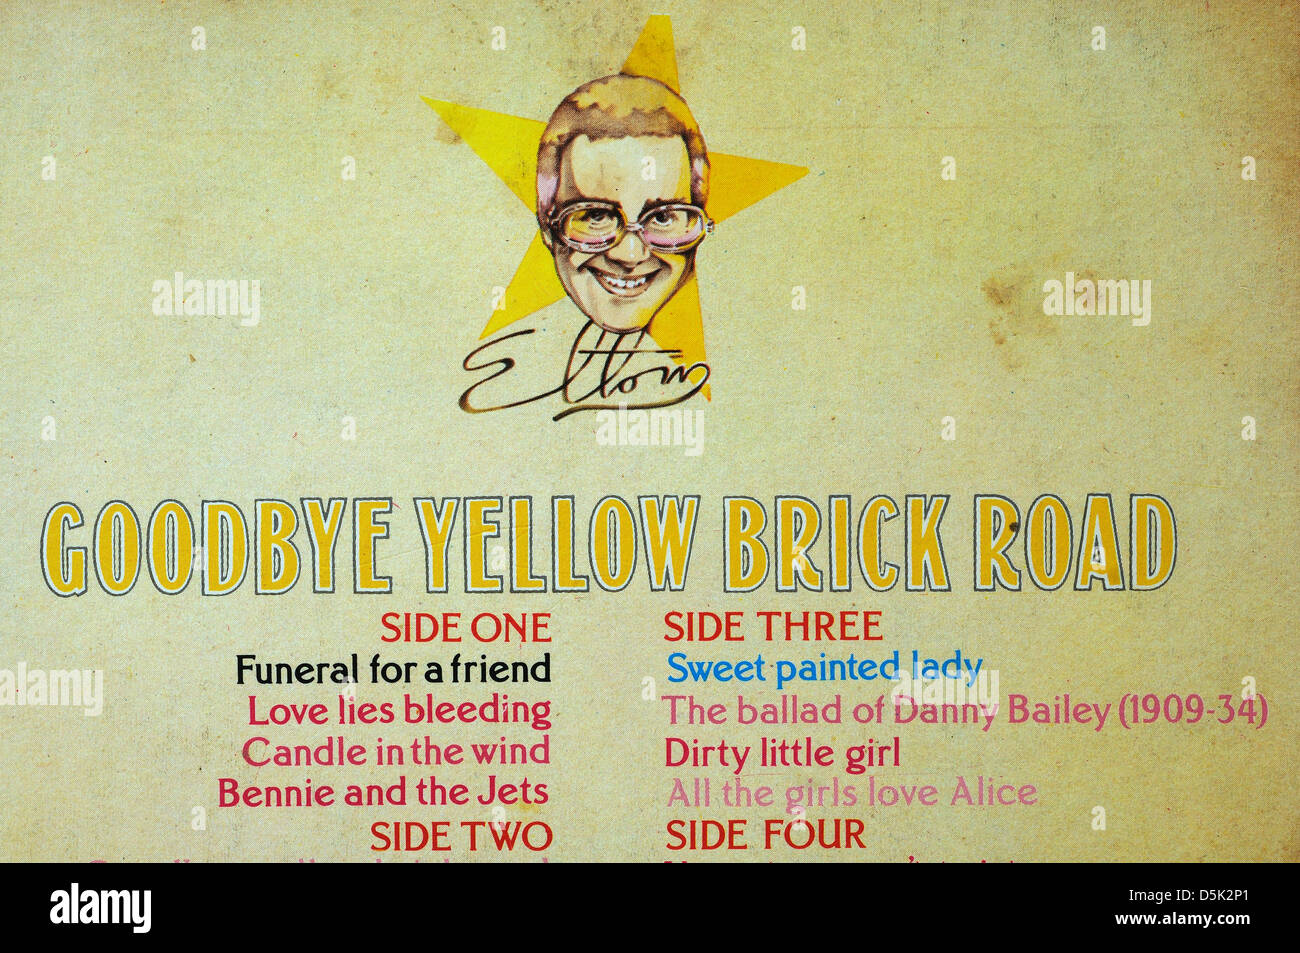 Candle in the Wind by Elton John on the Goodbye Yellow Brick Road album - Stock Image